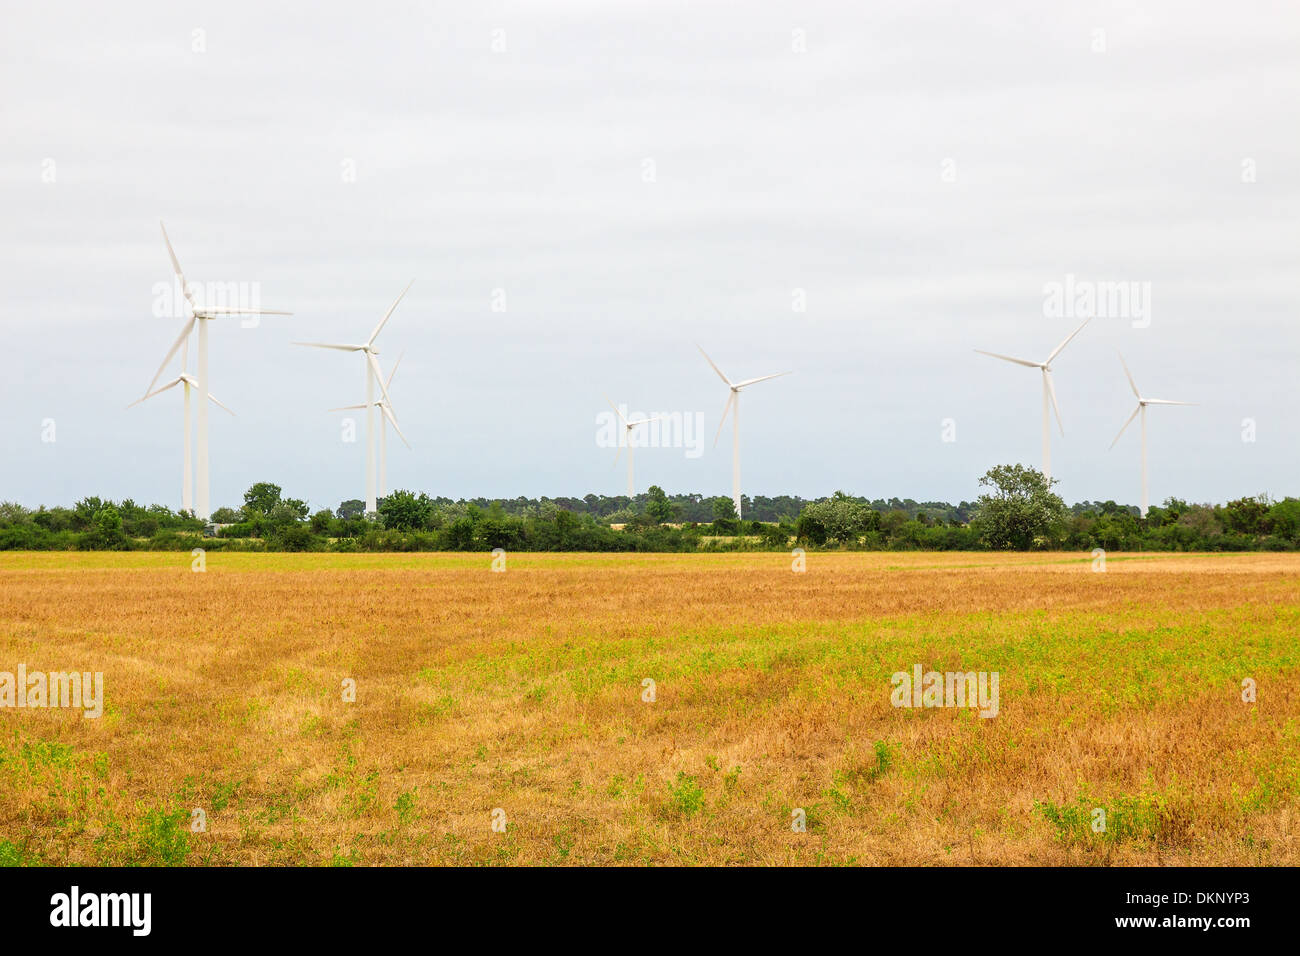 Wind turbines in the countryside, source of alternative energy. - Stock Image